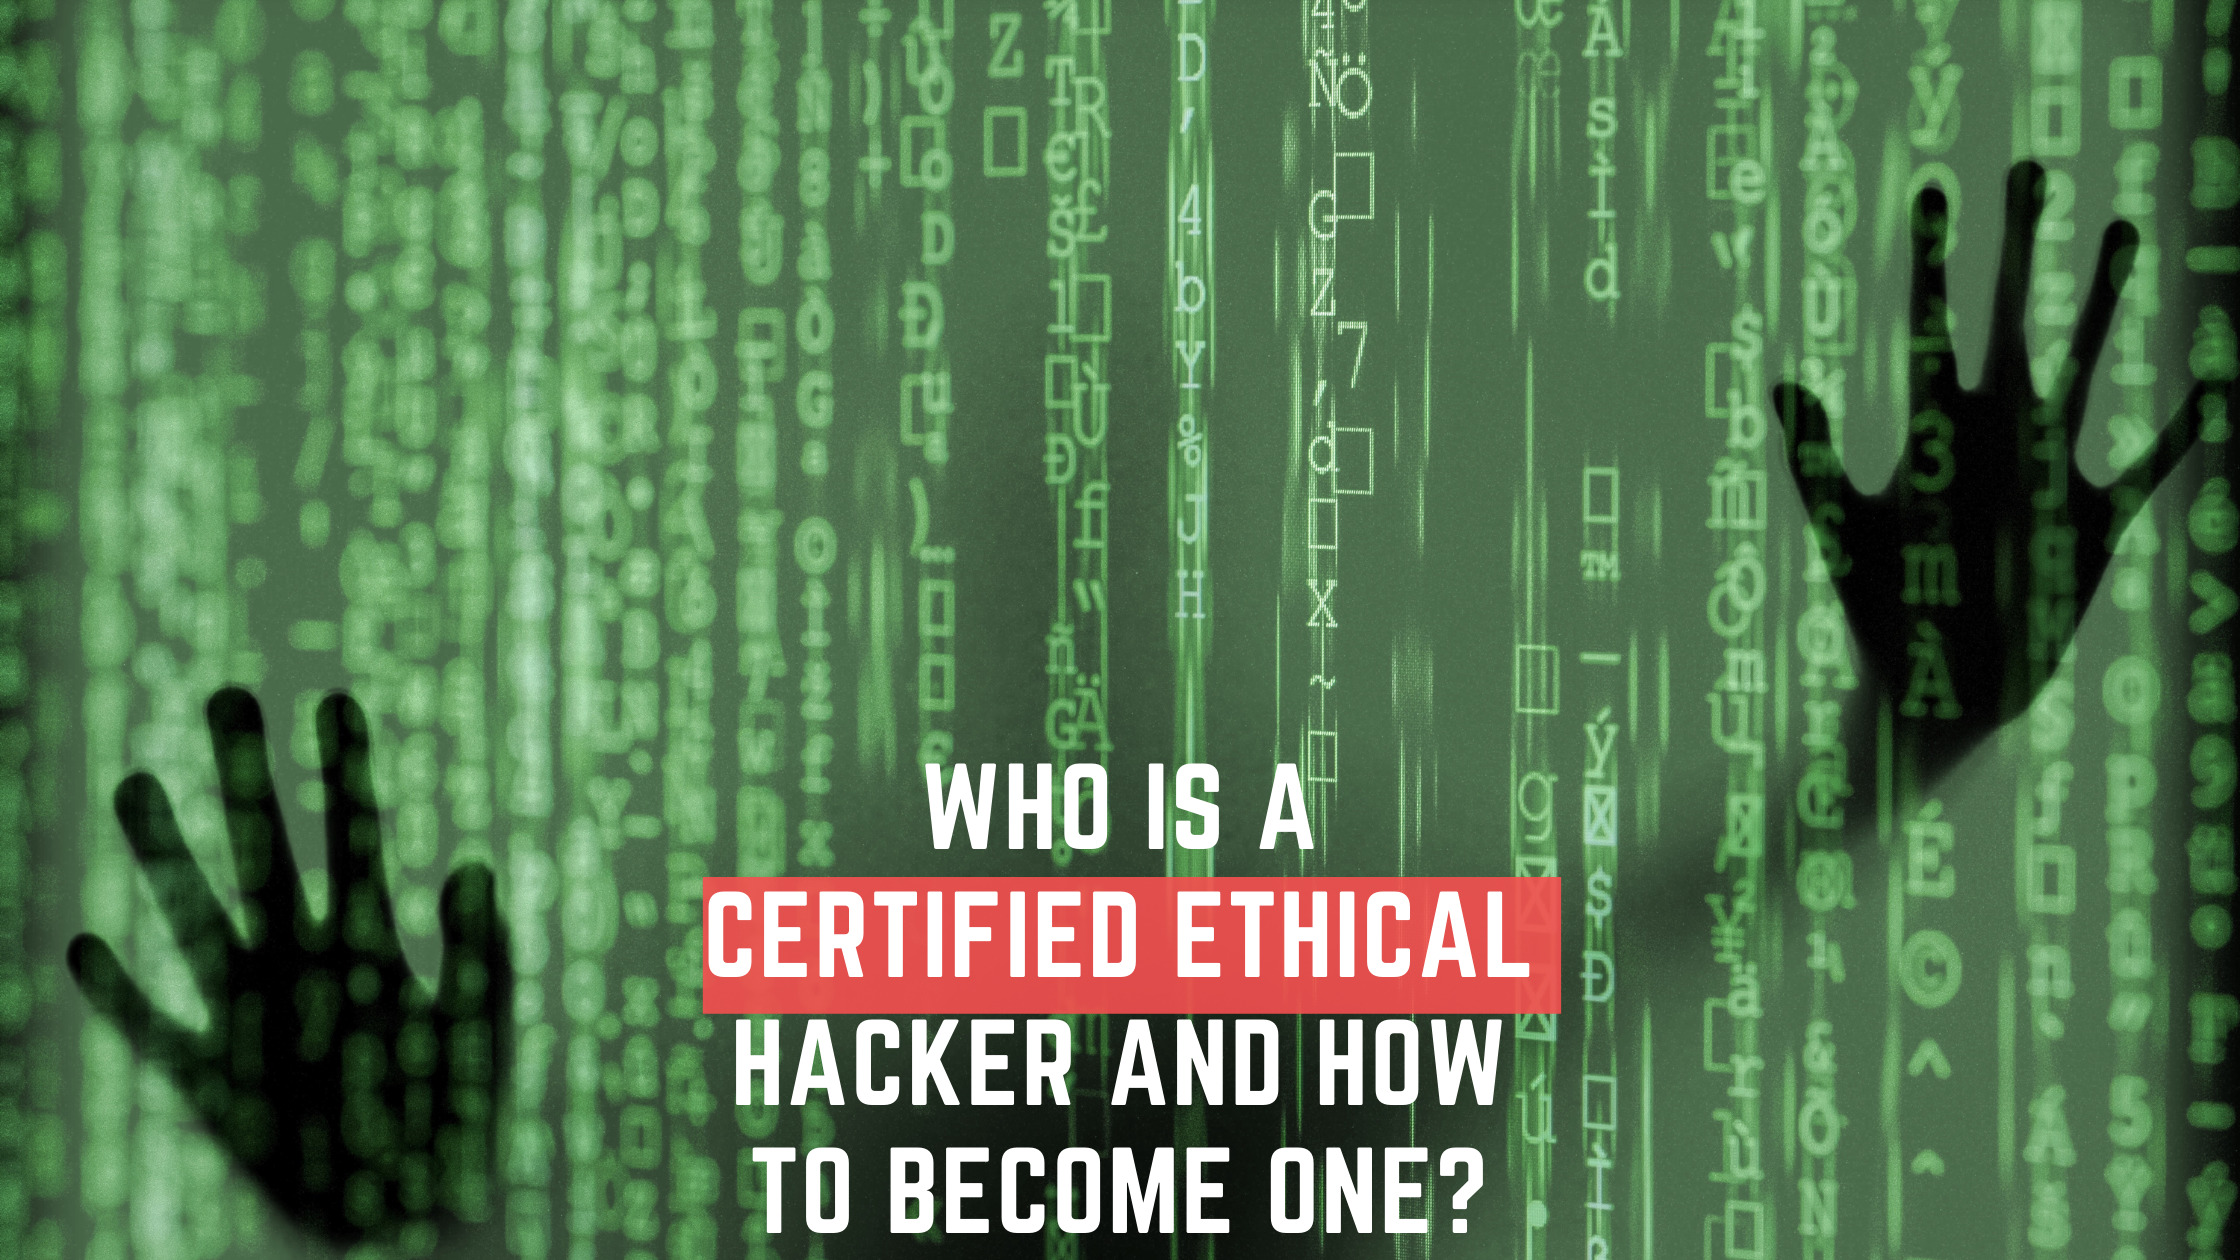 Who is a Certified Ethical Hacker and How to become One?